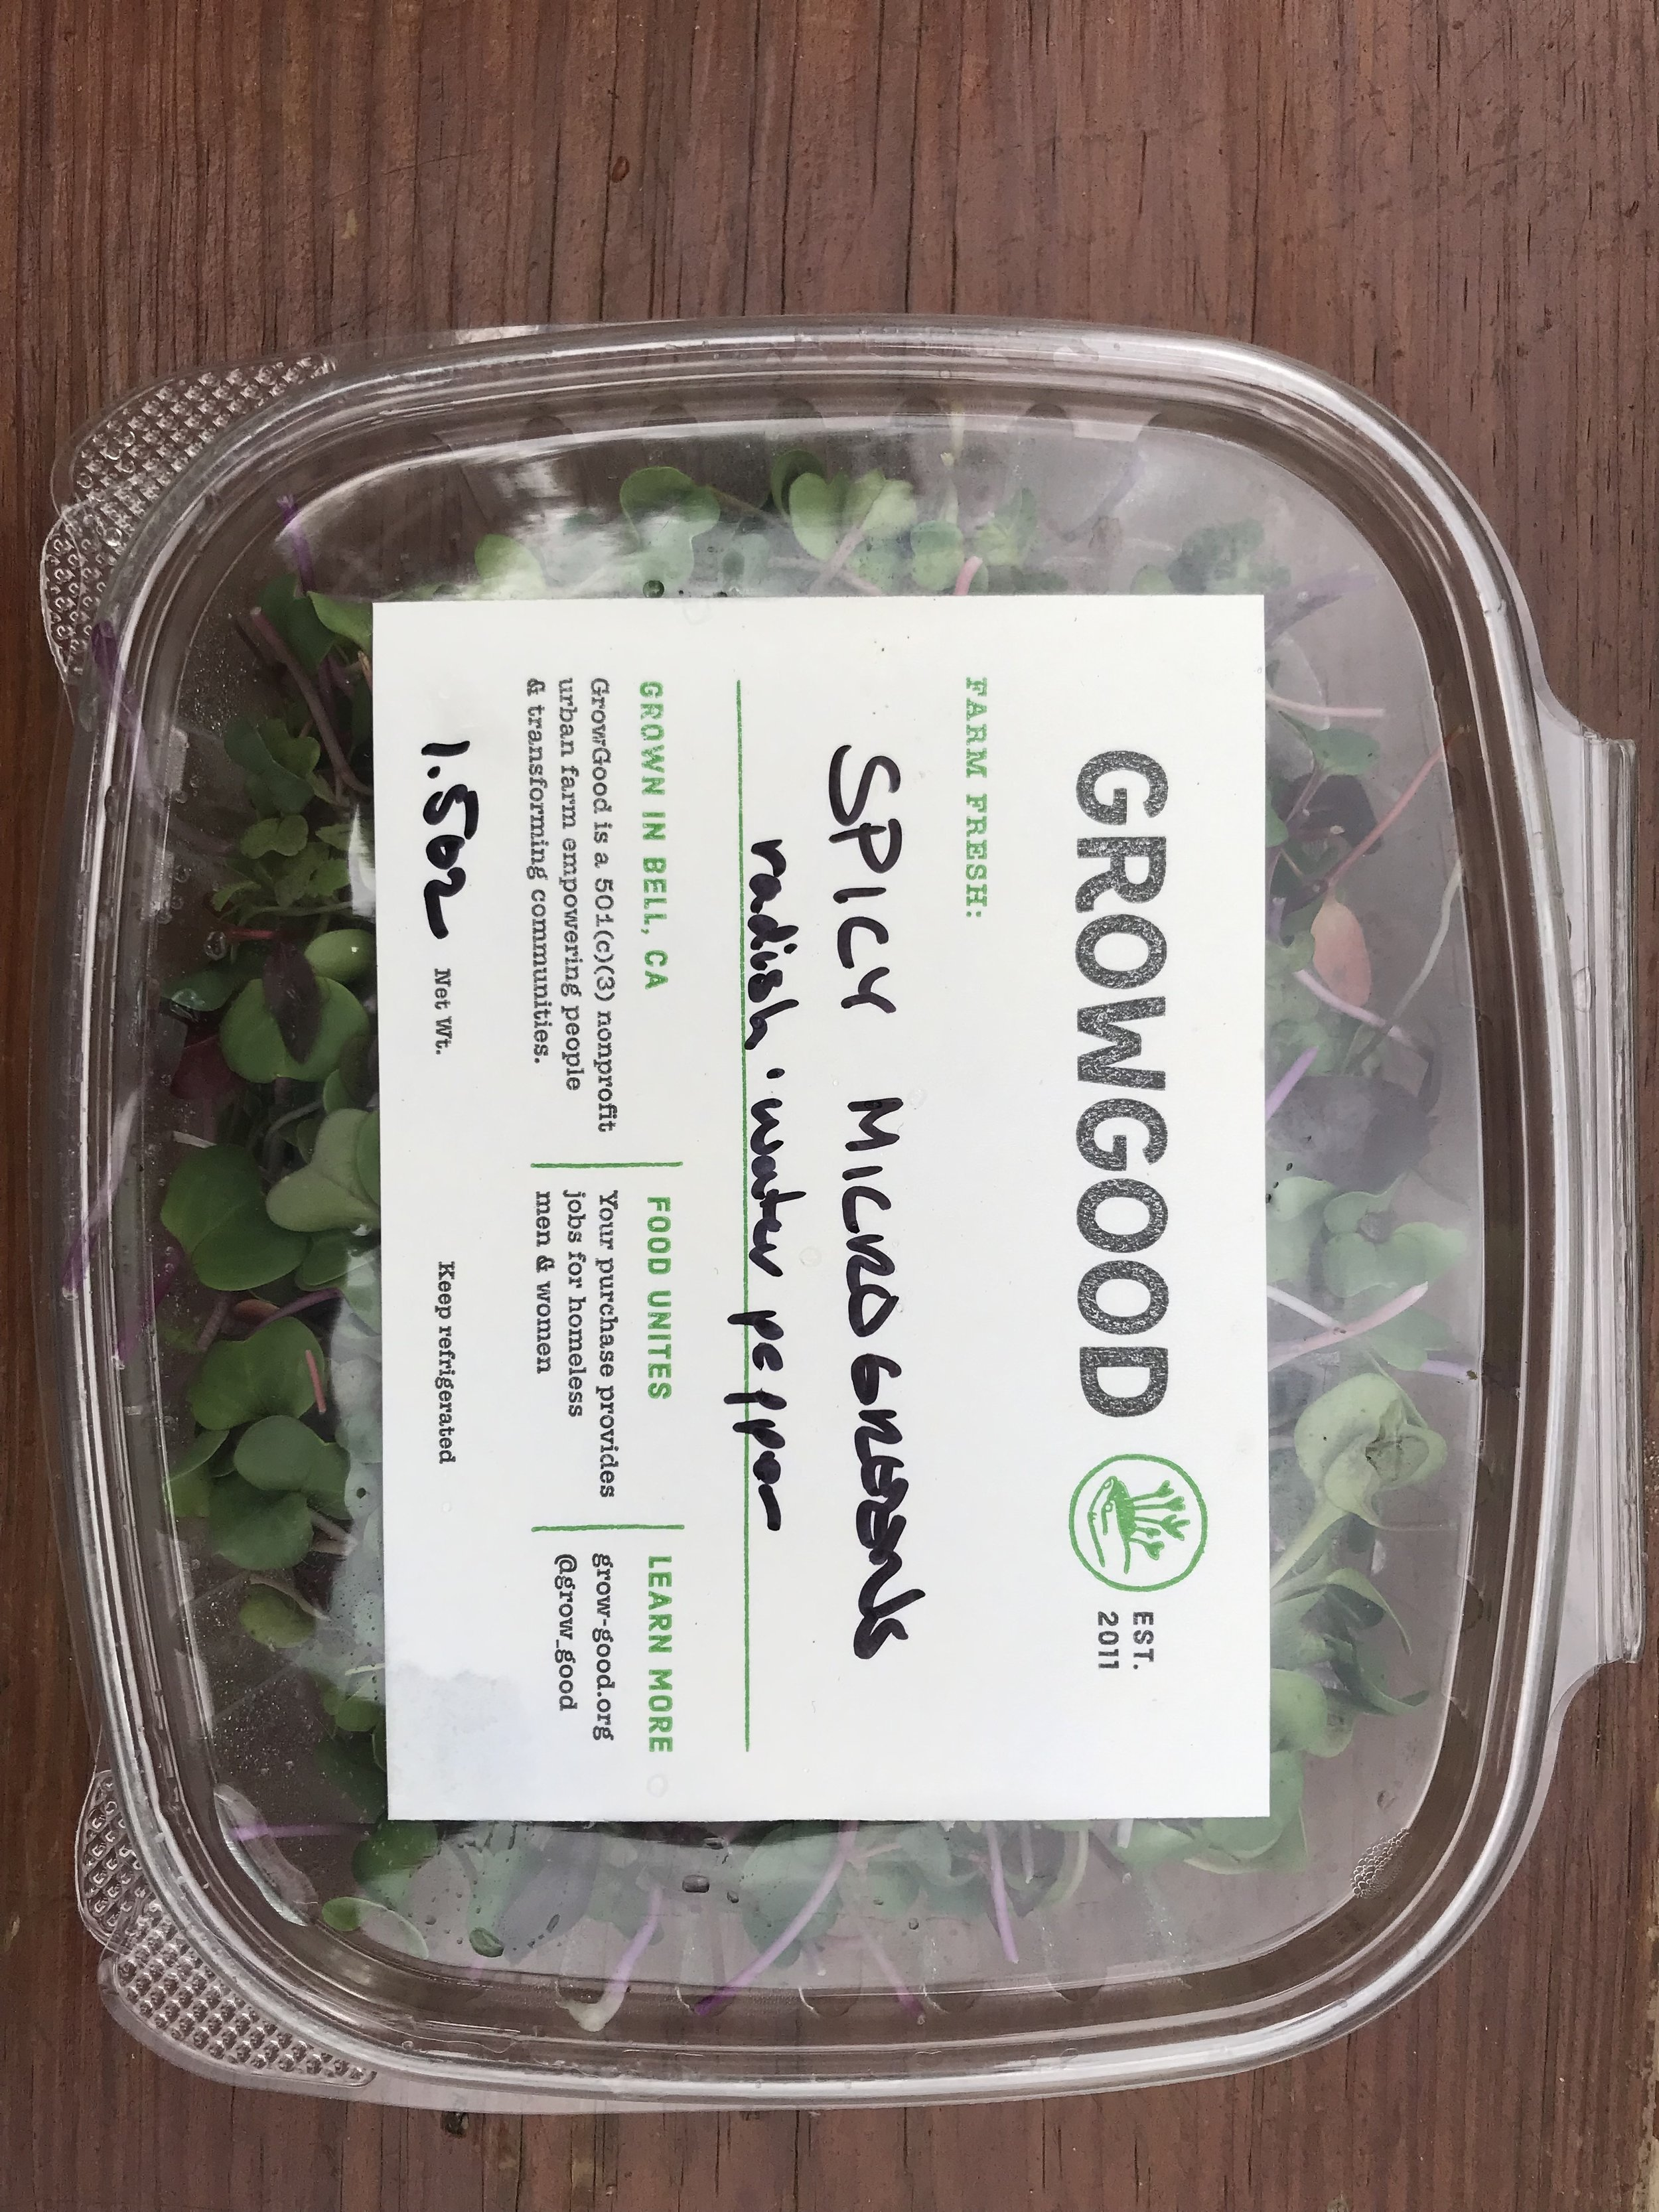 GrowGood microgreens at Cookbook Market in Highland Park